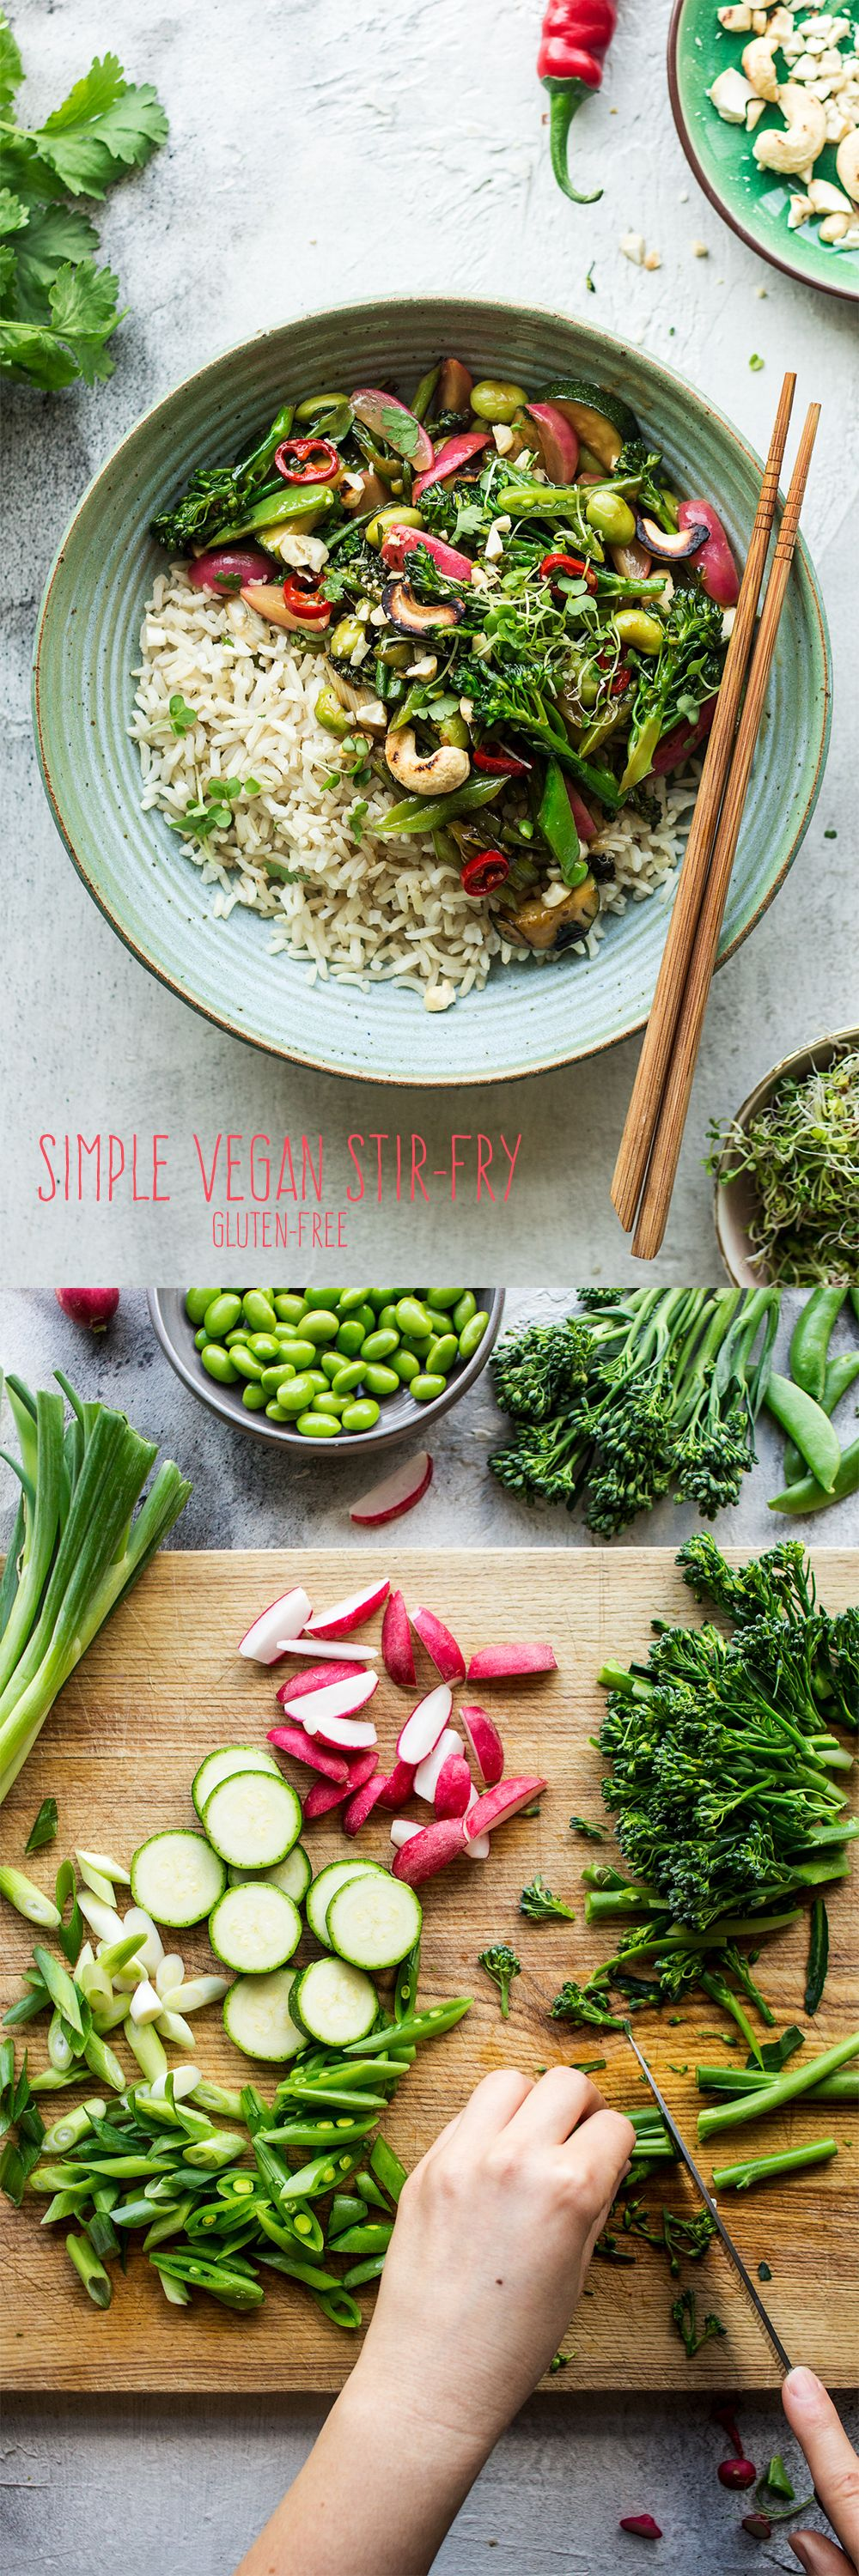 Simple Stir Fry With Spring Veggies